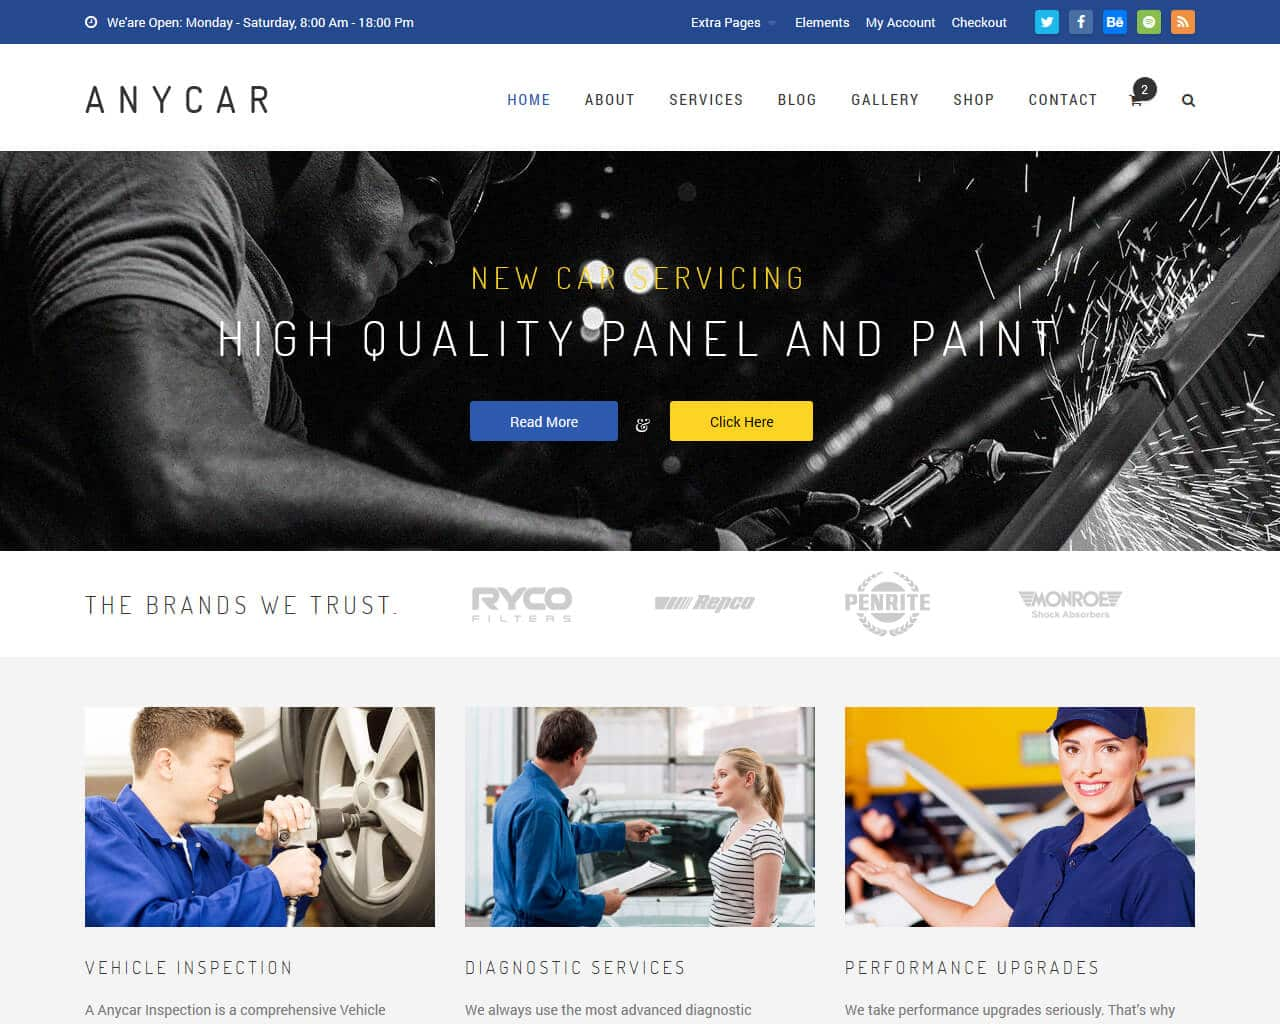 AnyCar Website Template